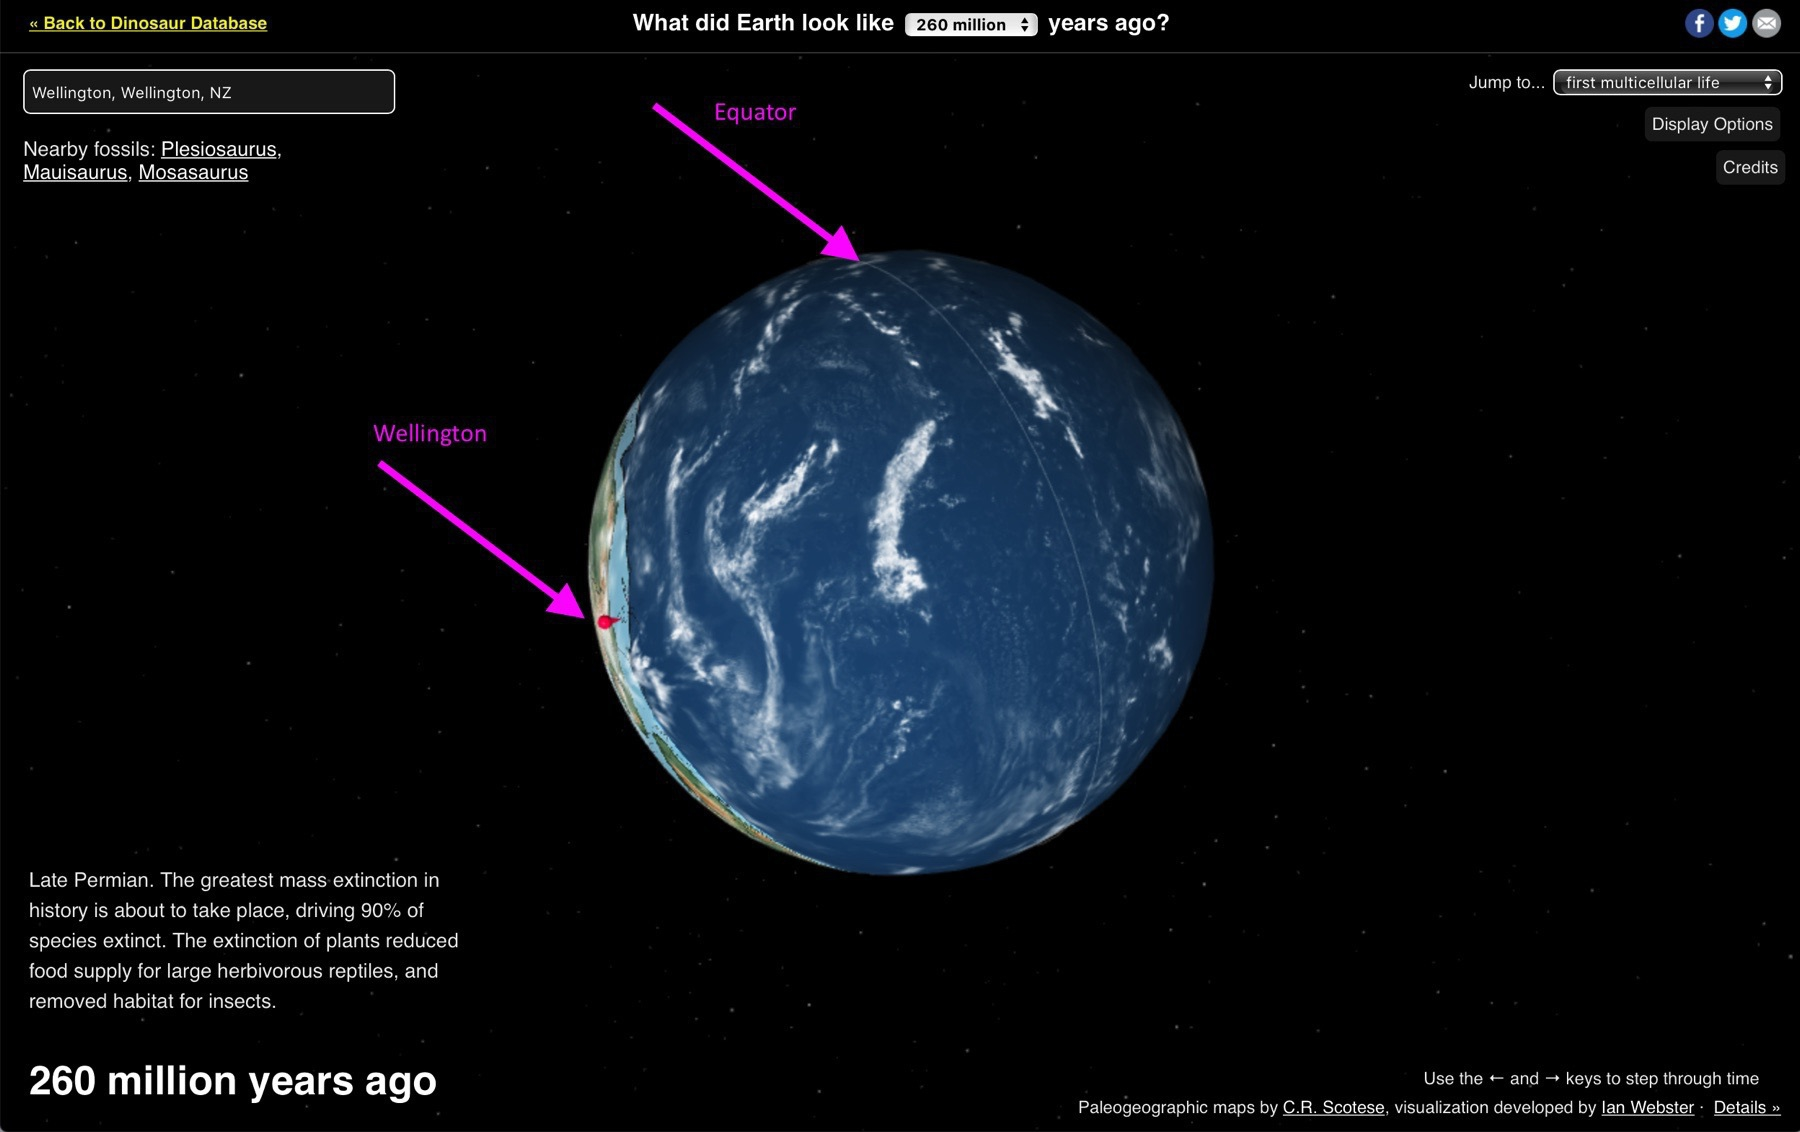 Screenshot showing Wellington at the South Pole, with equator marked for reference.